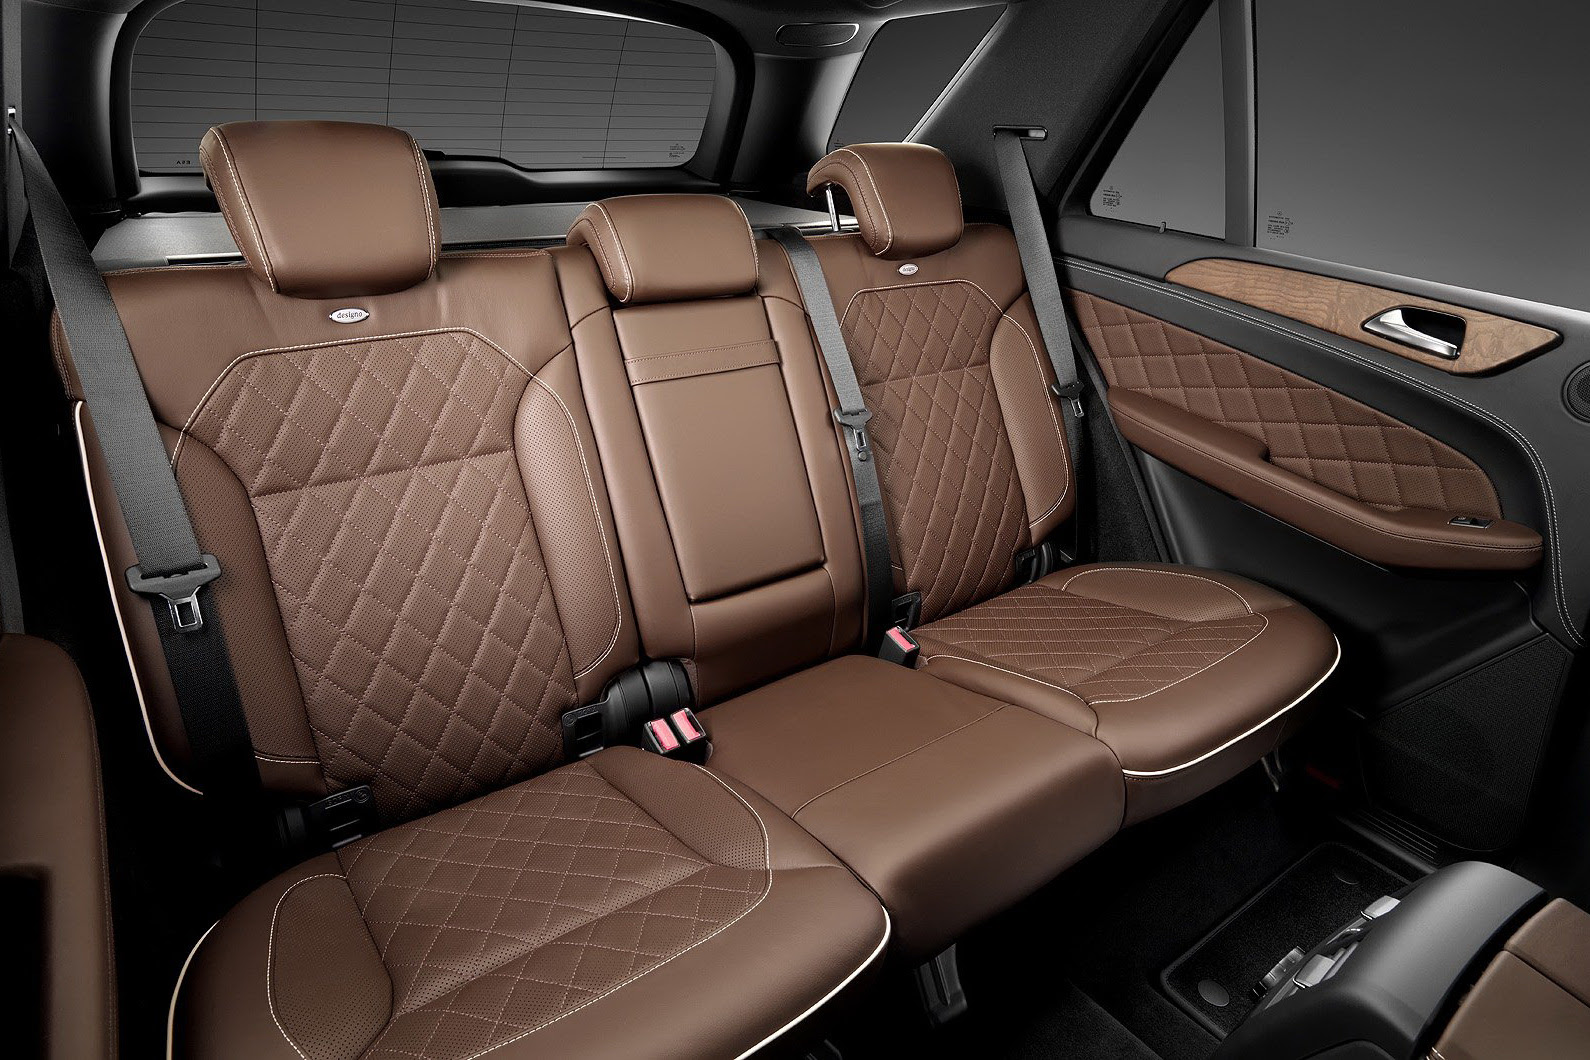 Mercedes 7 Seater Suv Price In India